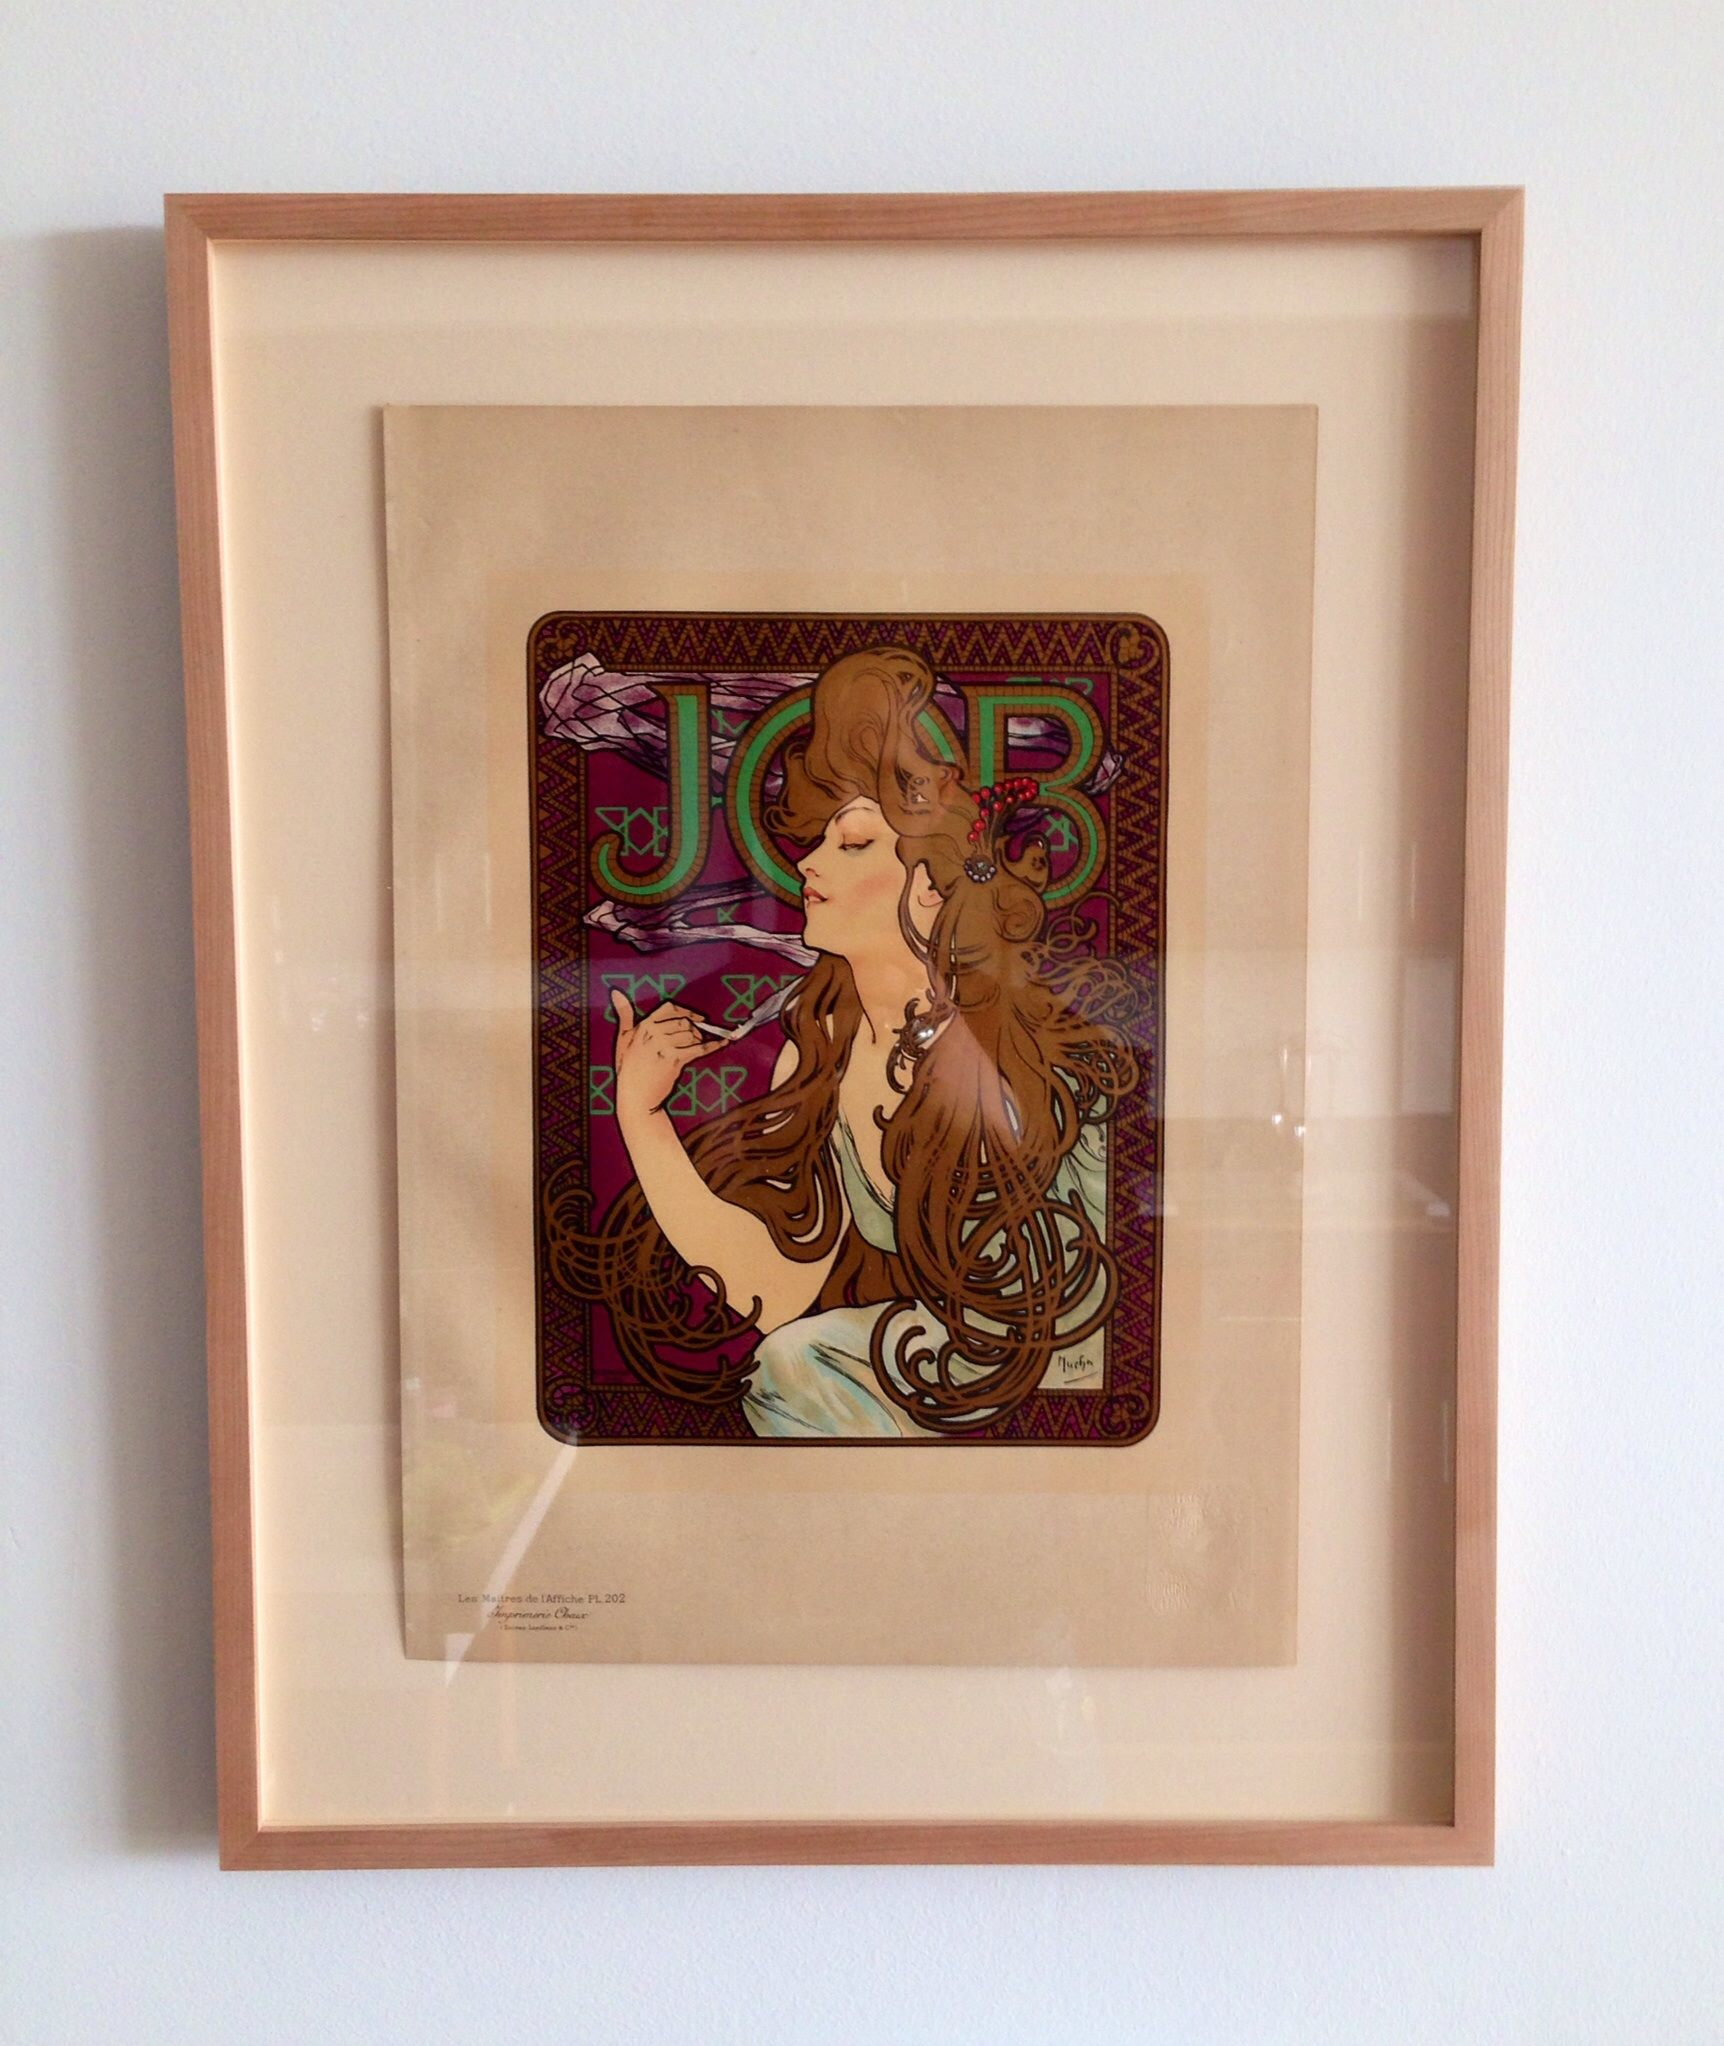 Alphonse Mucha lithograph from 1900